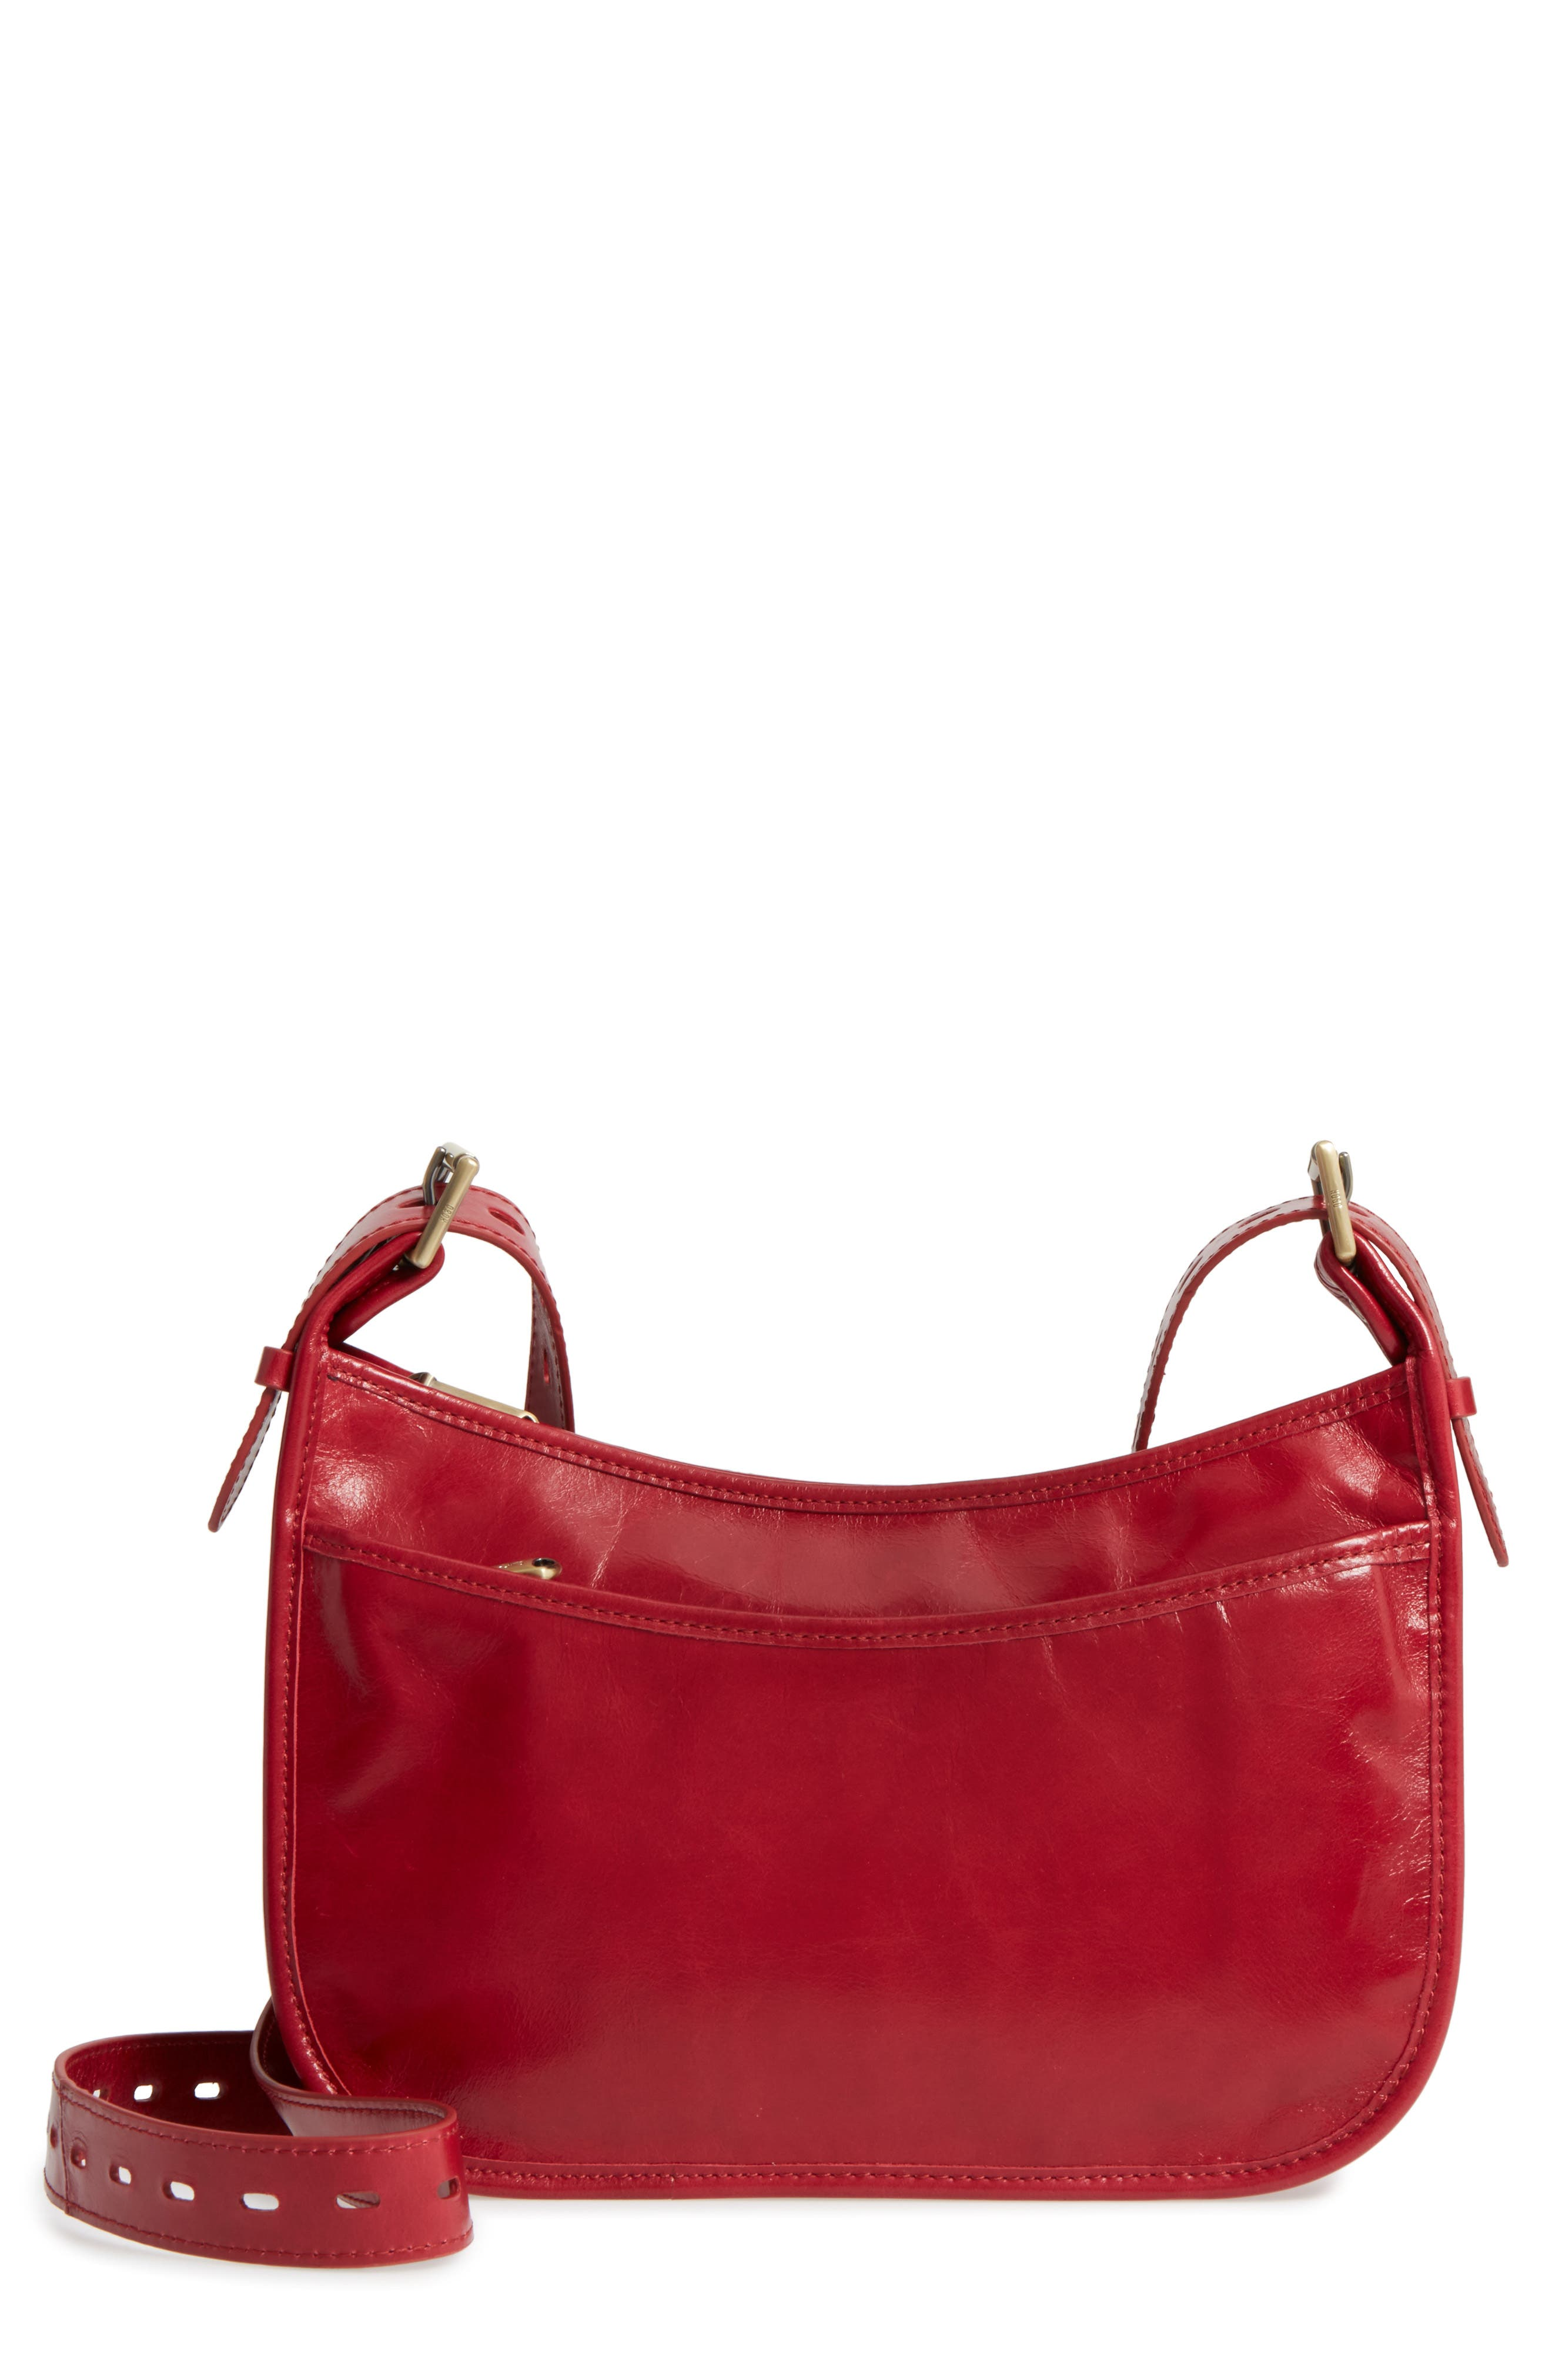 Hobo Chase Calfskin Leather Crossbody Bag